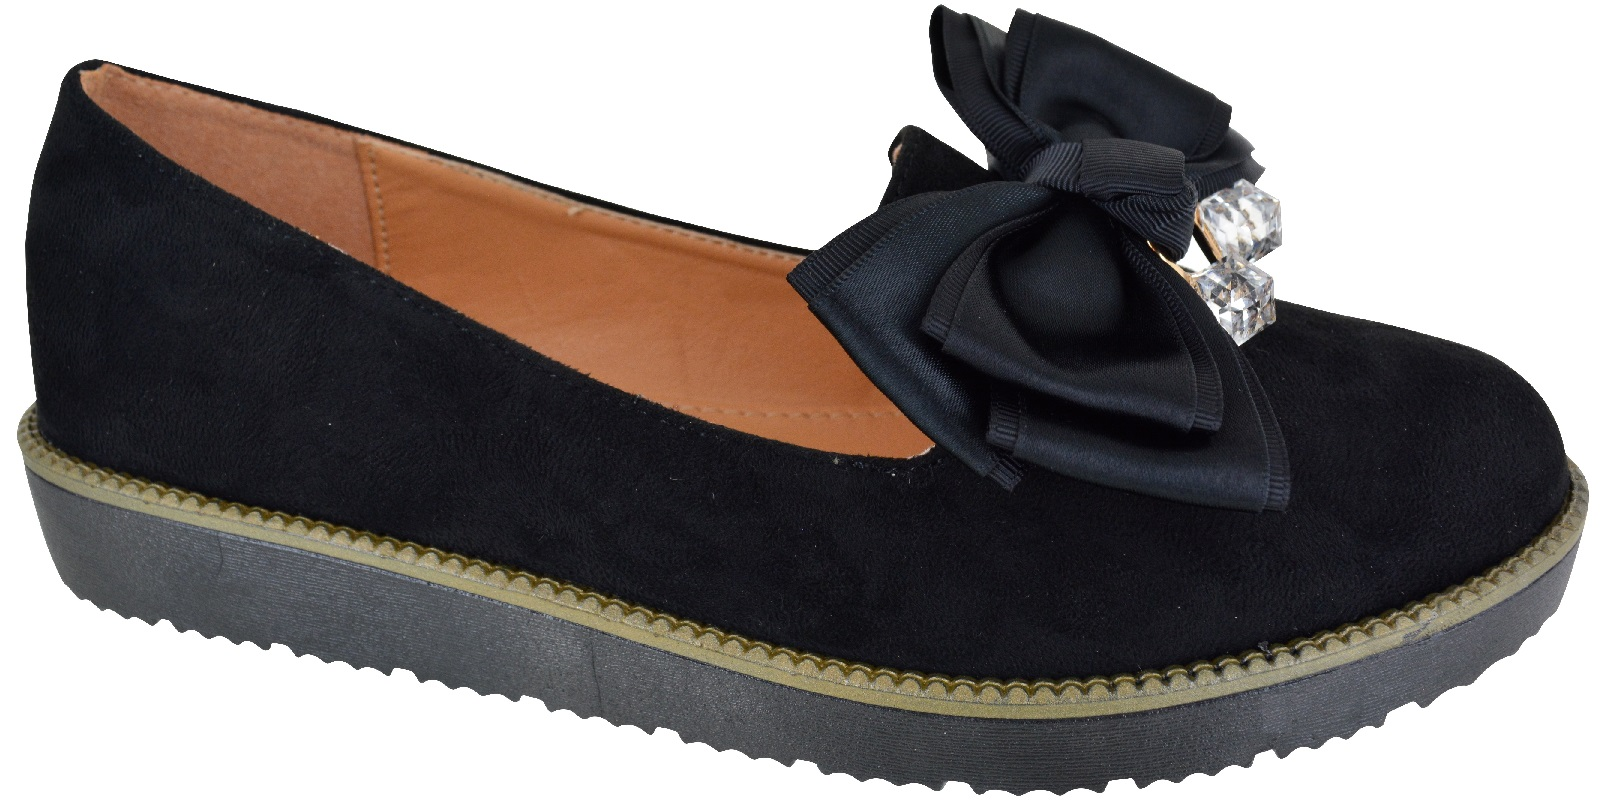 WOMENS-LADIES-FLAT-CREEPER-CHUNKY-SOLE-SCHOOL-WORK-DOLLY-LOAFERS-BOW-SHOES-SIZE thumbnail 6